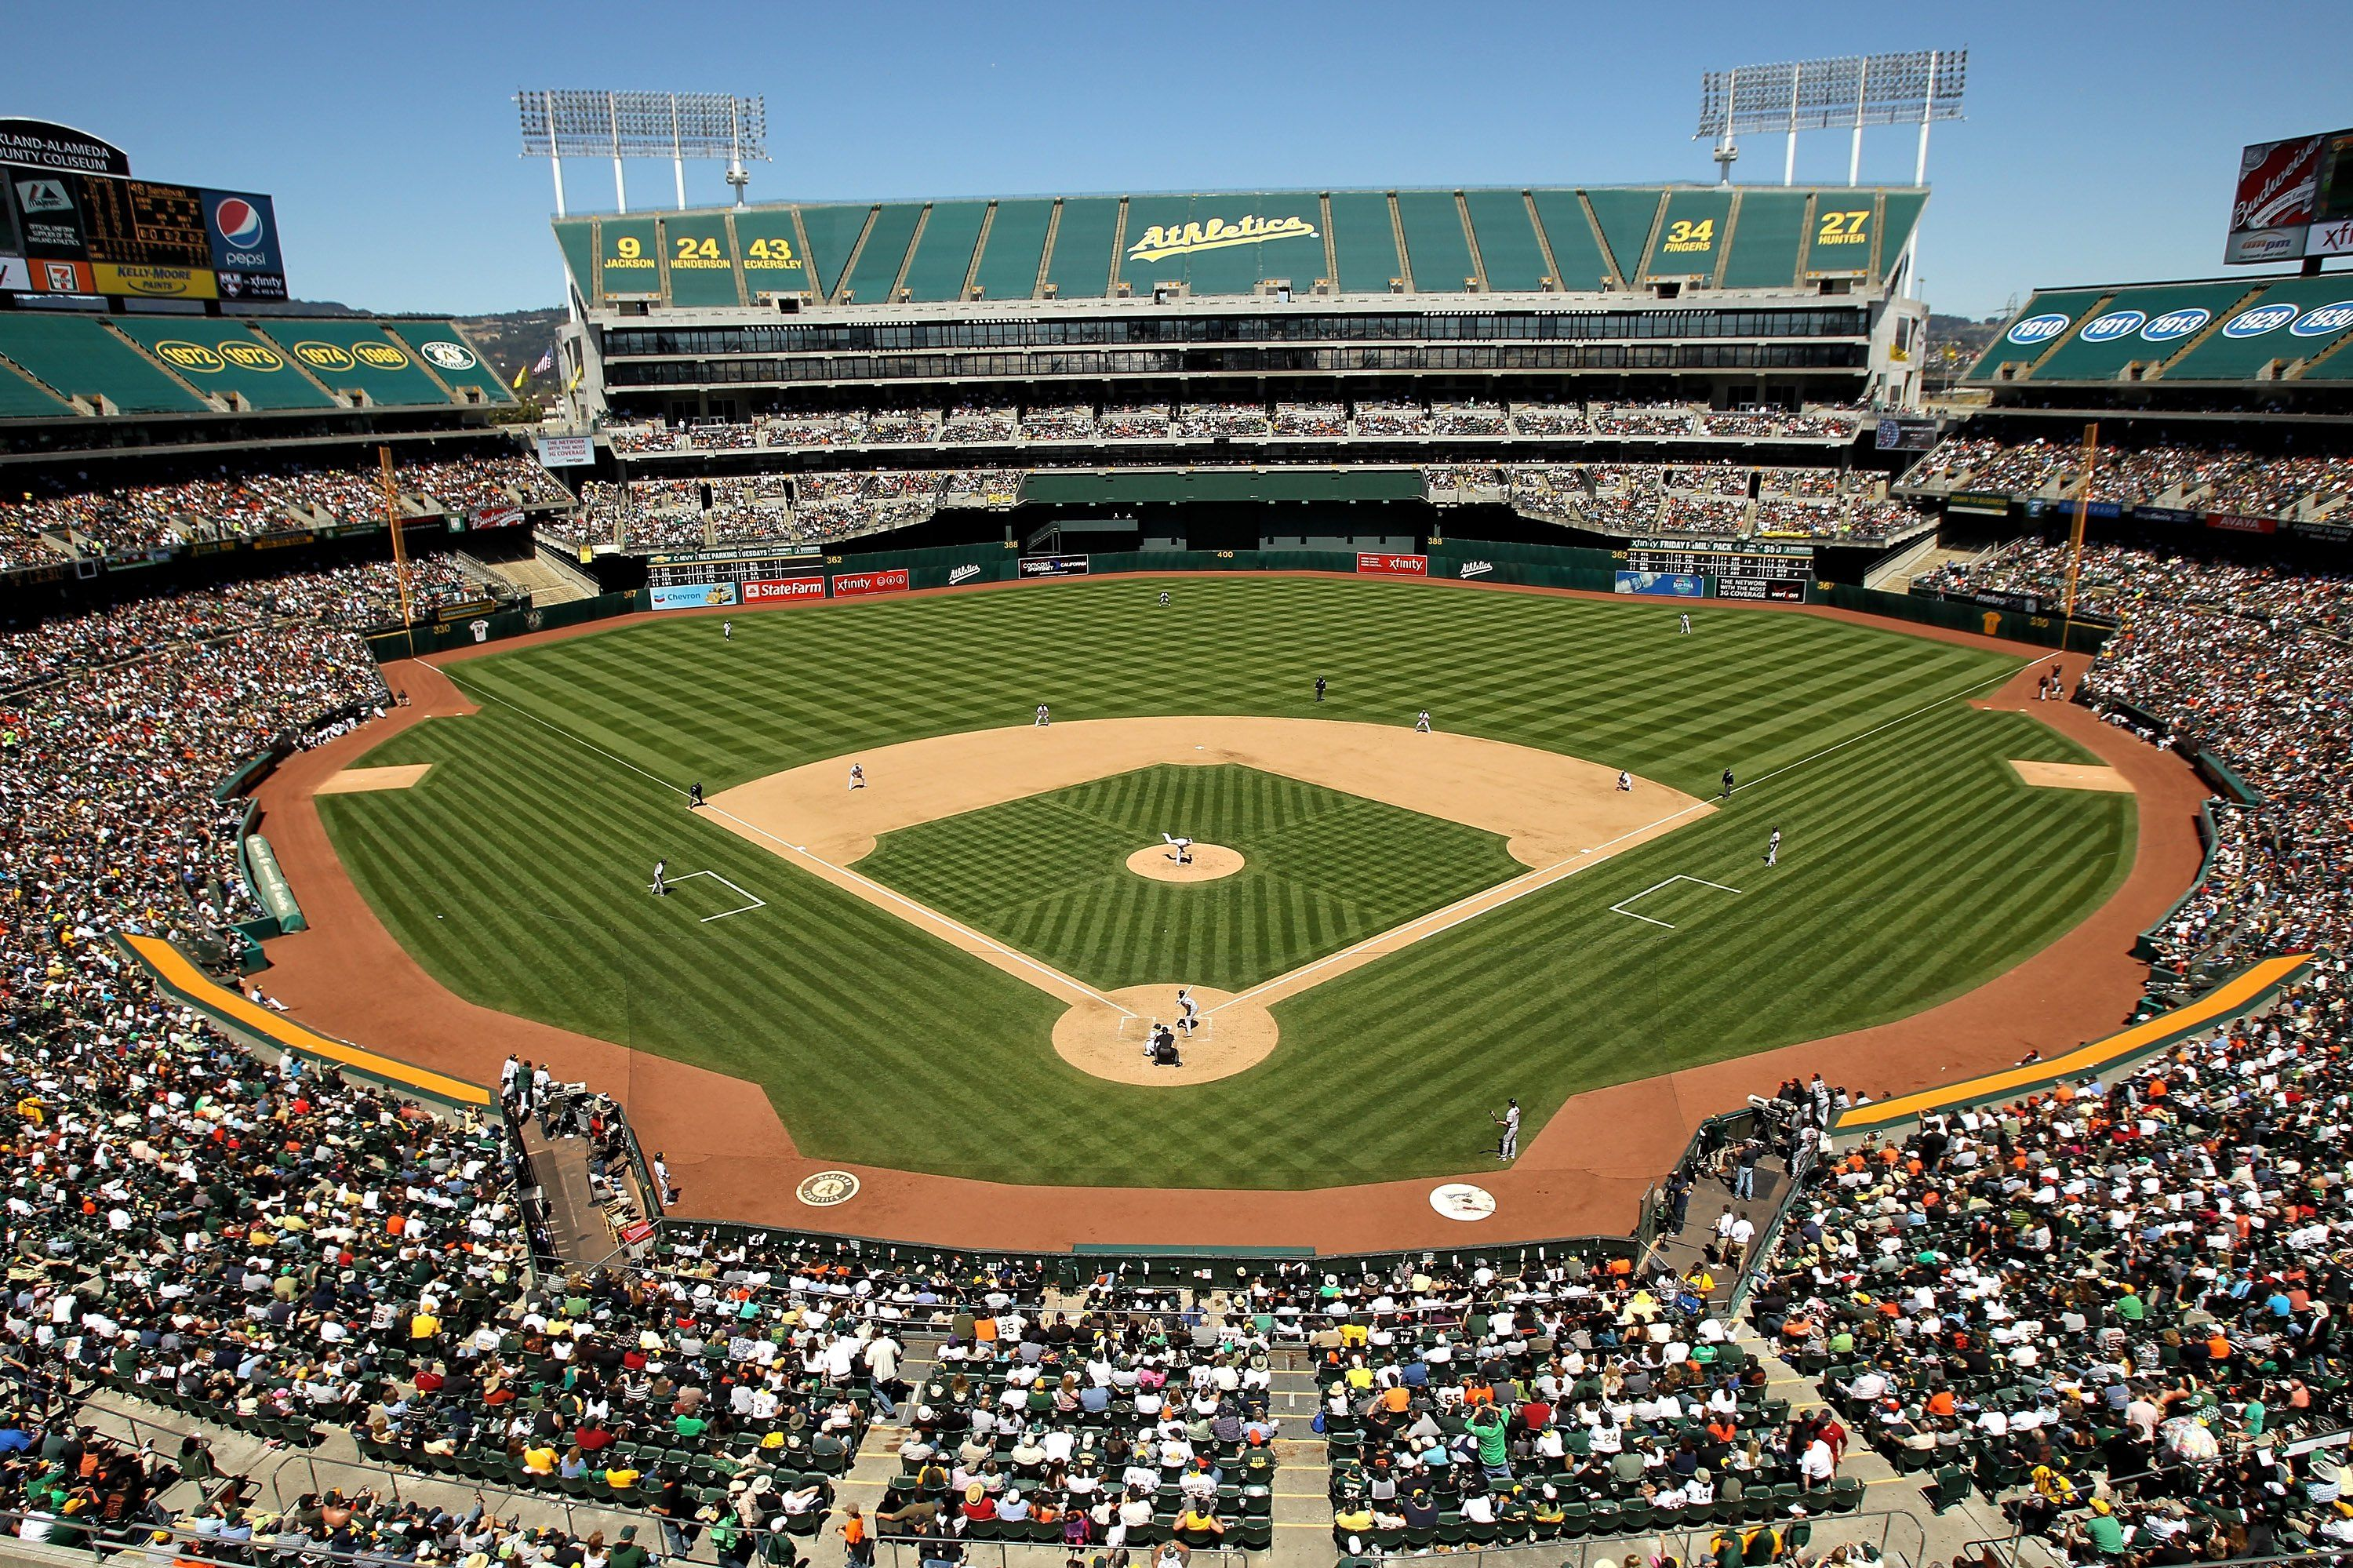 O Co Coliseum Athletics Com Ballpark Oakland Coliseum Baseball Park Mlb Stadiums